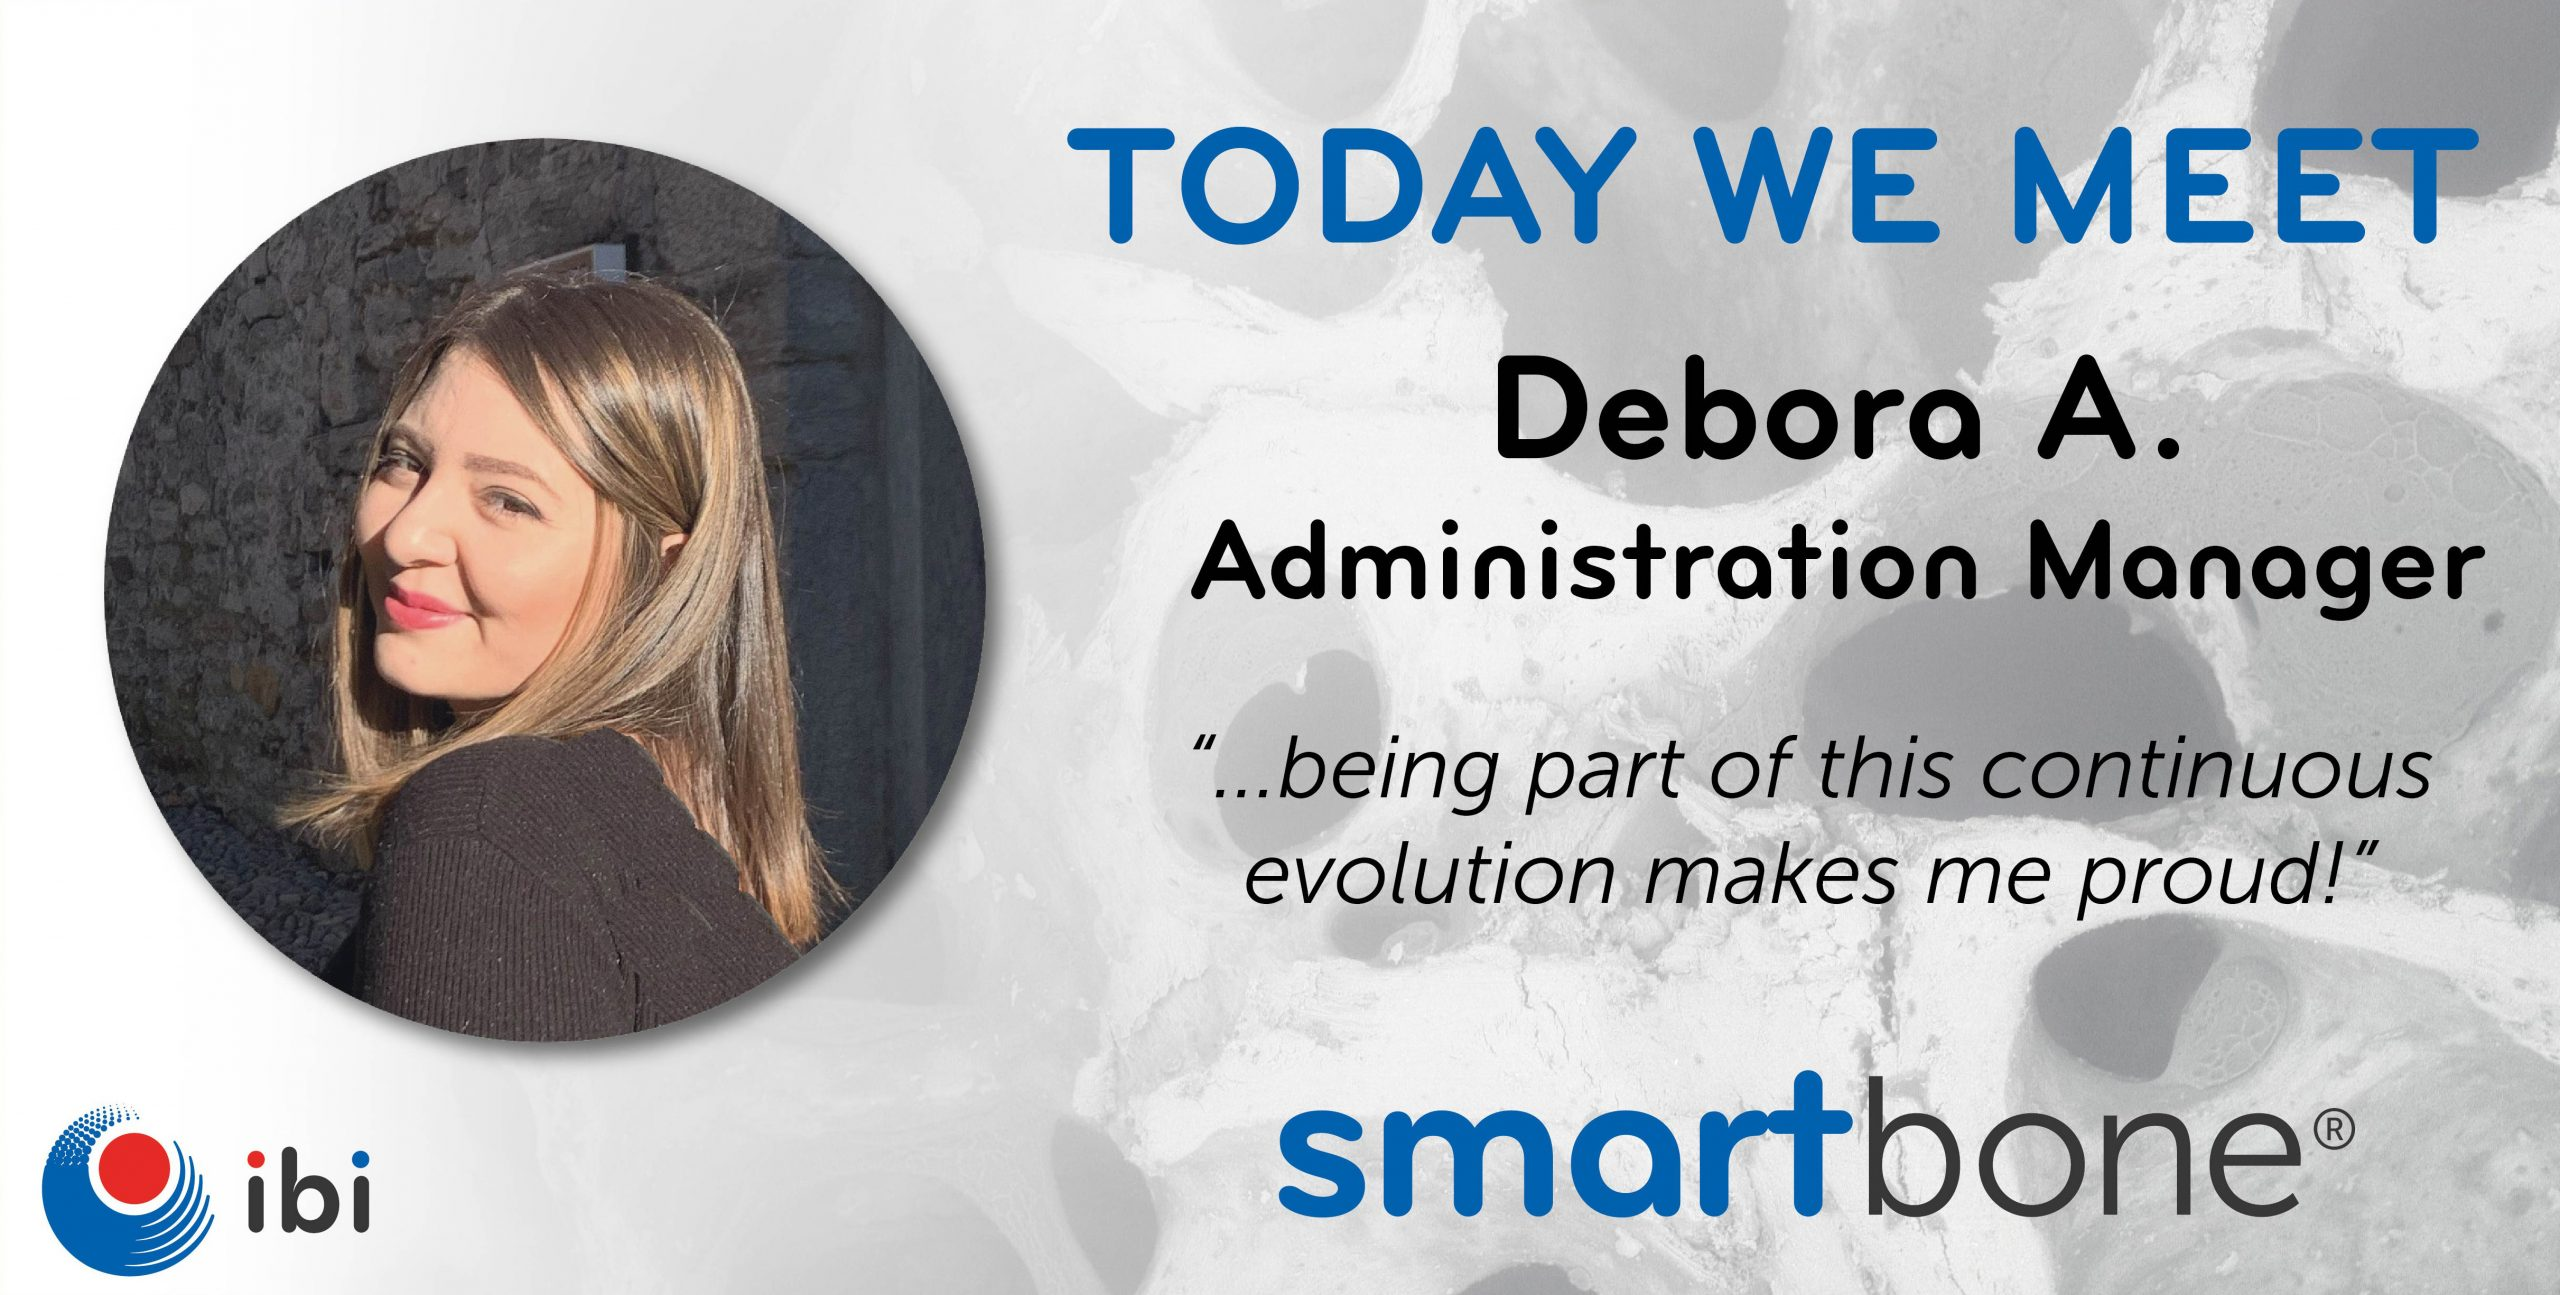 Today we meet - Debora